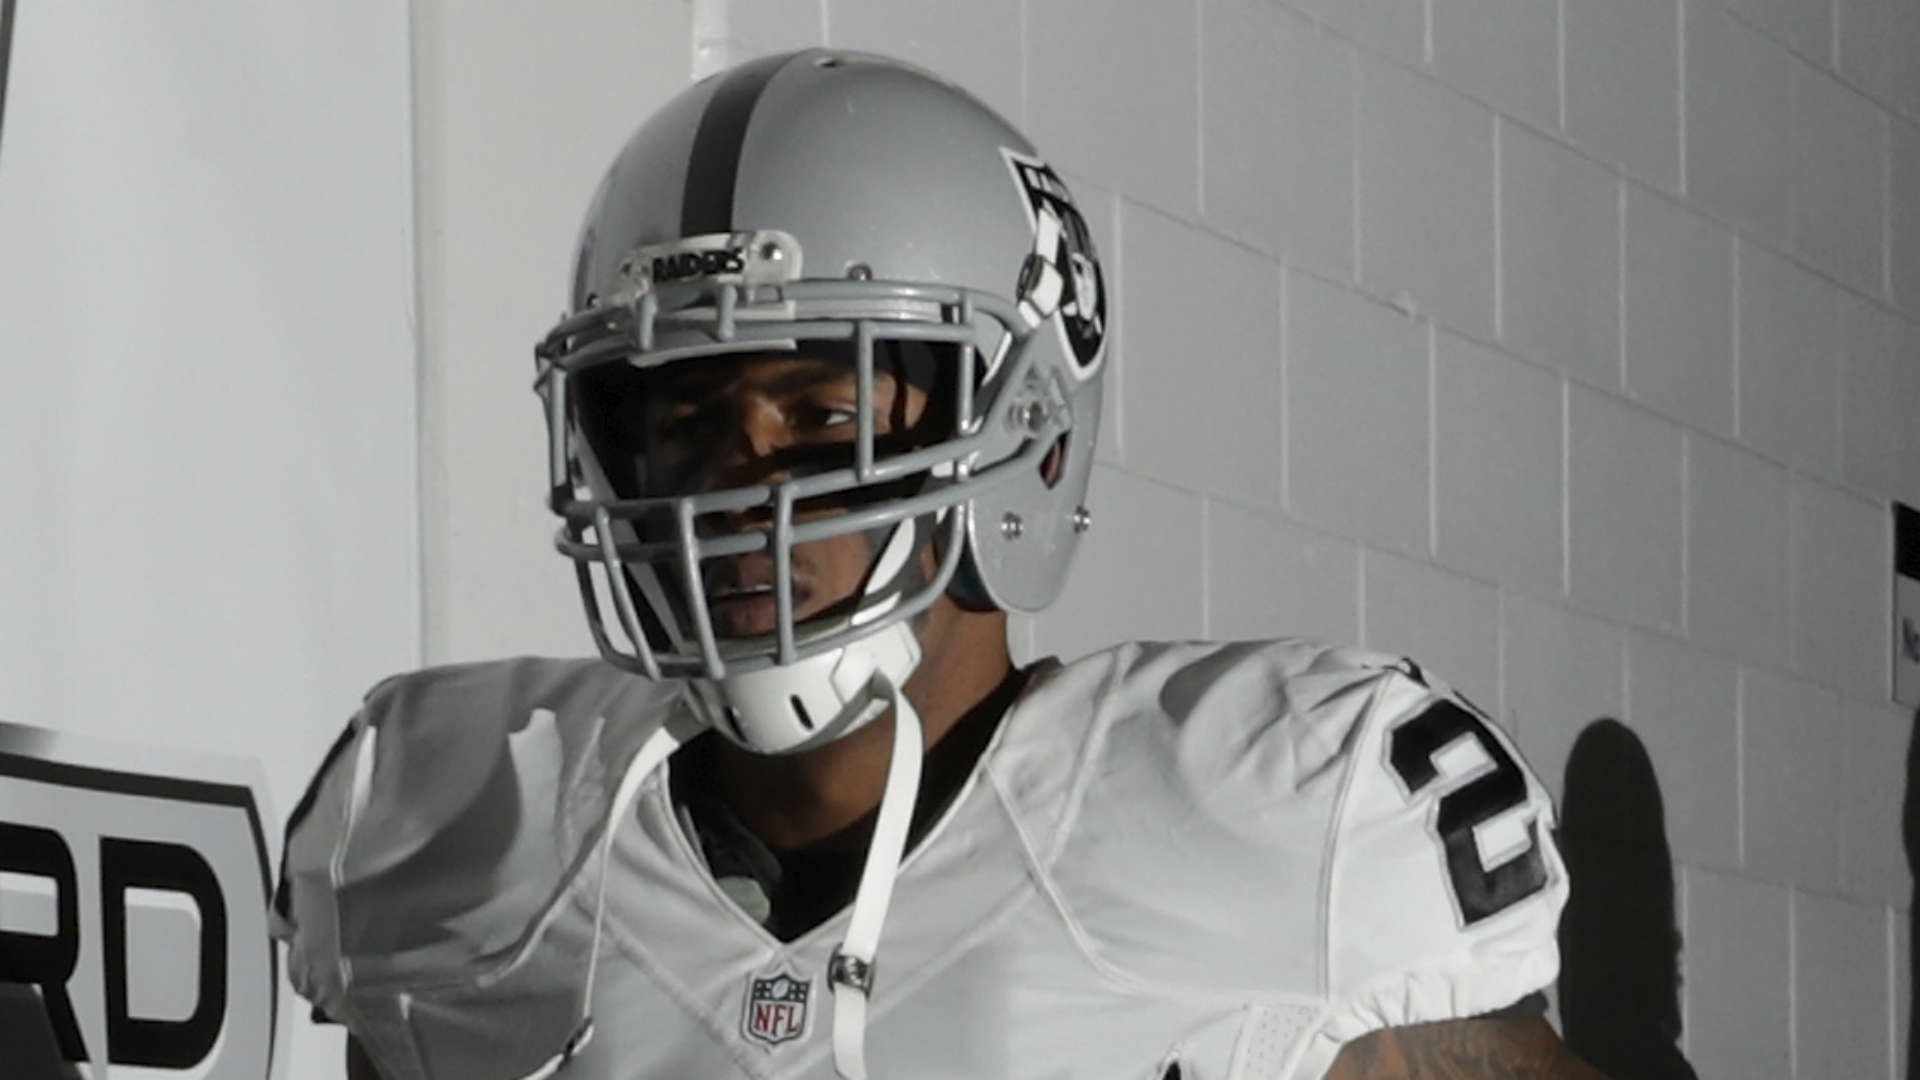 Raiders to release cornerback Sean Smith, who's reportedly headed to jail